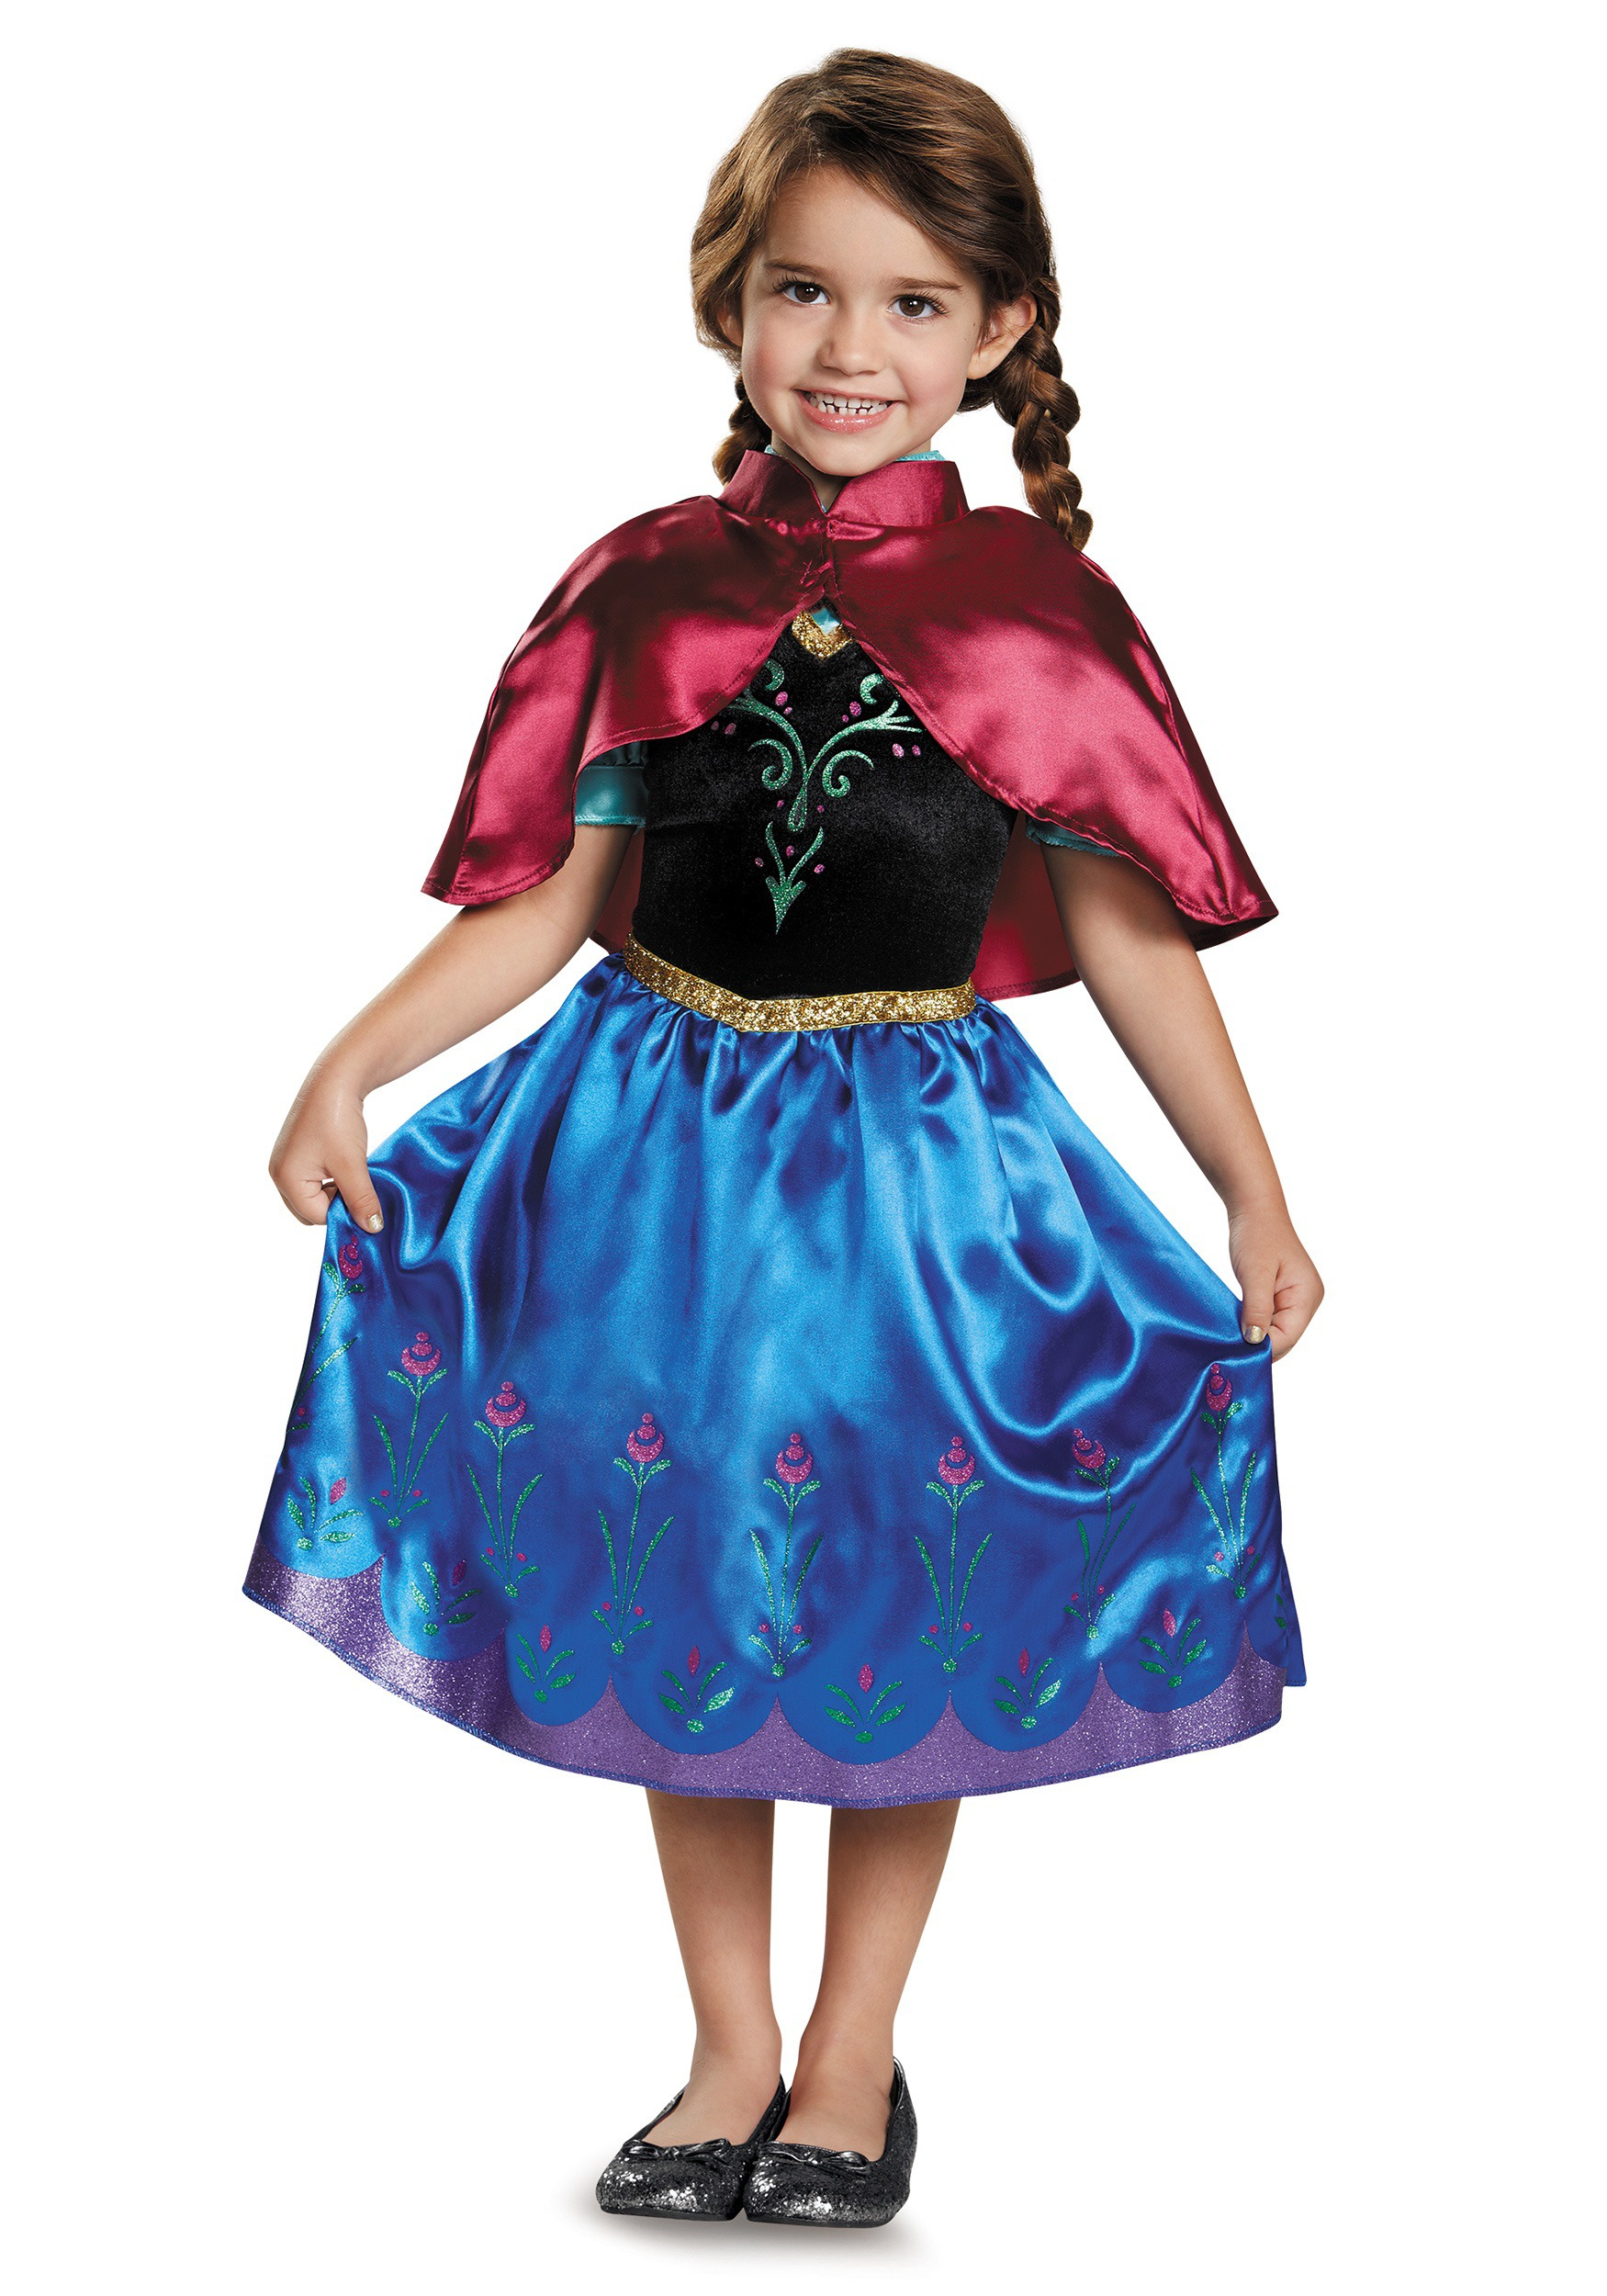 sc 1 st  Halloween Costumes : baby frozen anna costume  - Germanpascual.Com